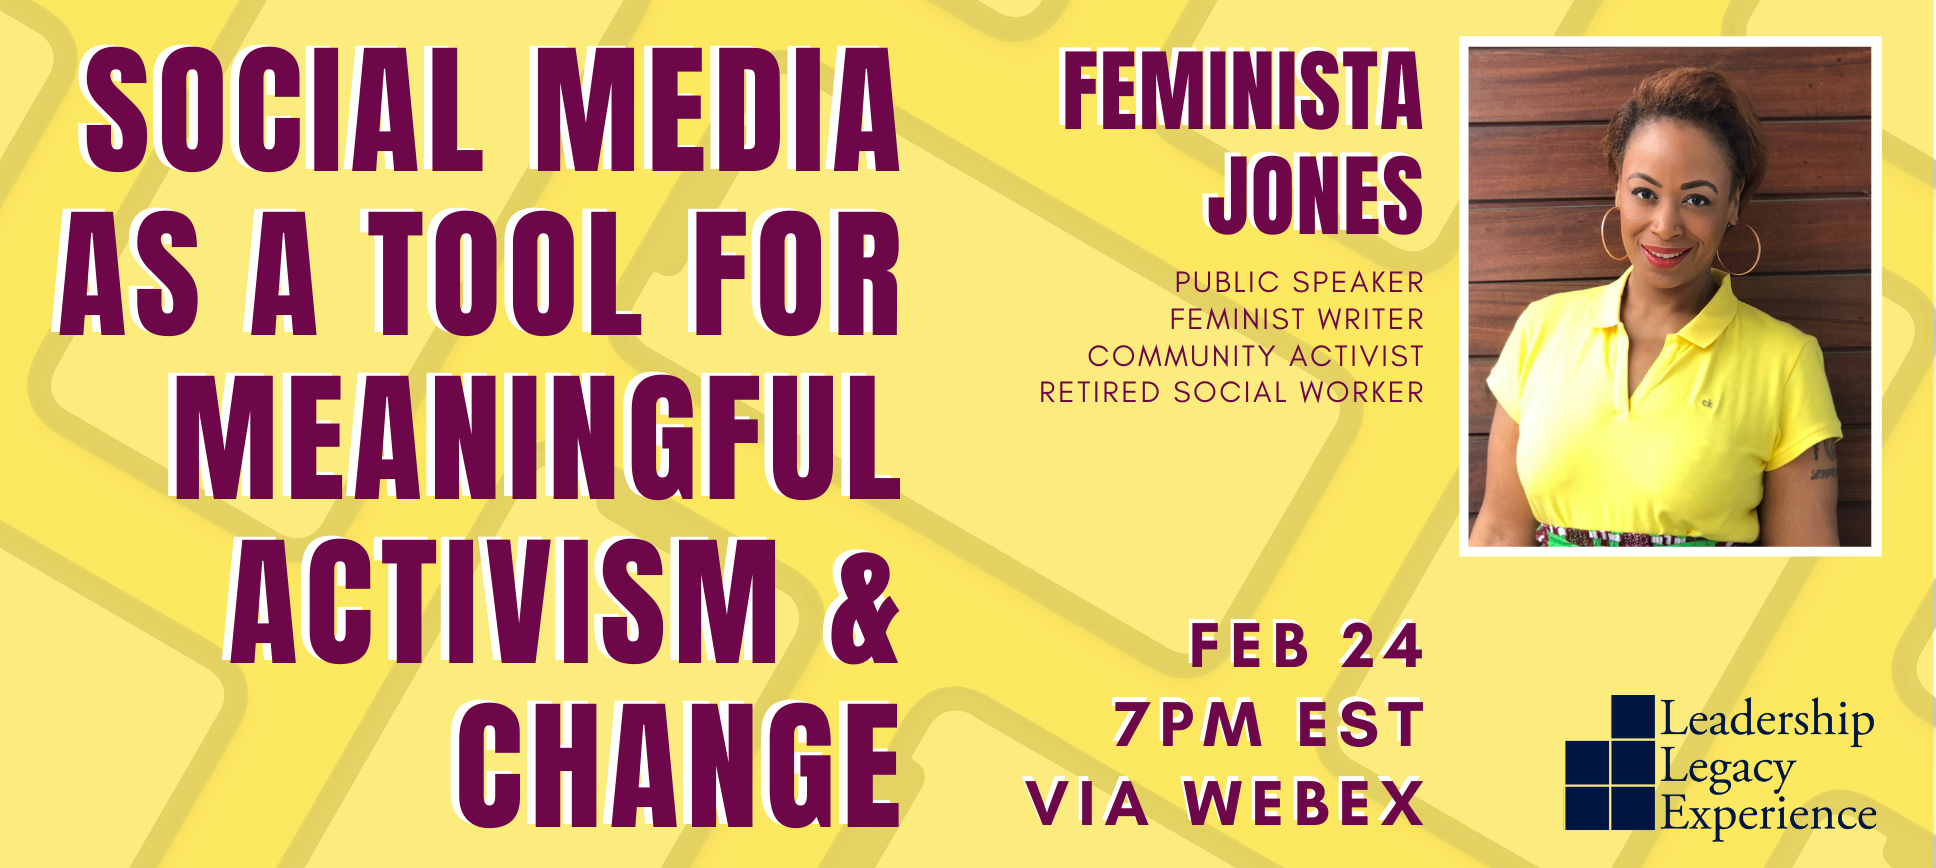 Social Media as a Tool for Meaningful Activism & Change web